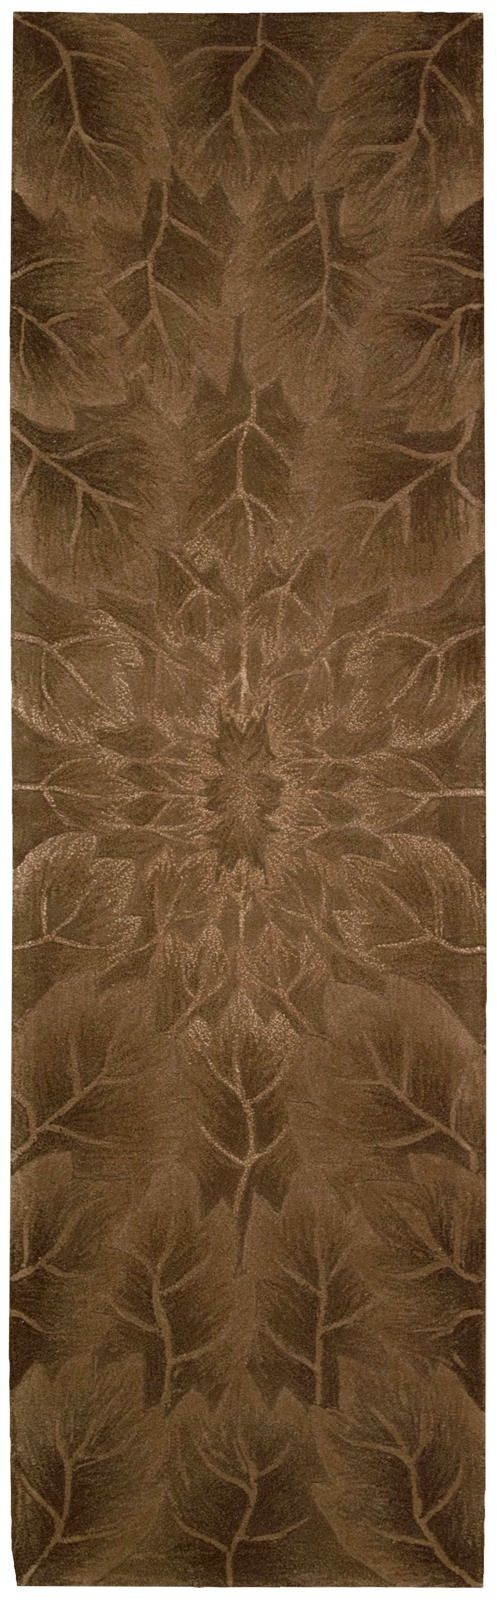 nourison moda transitional area rug collection